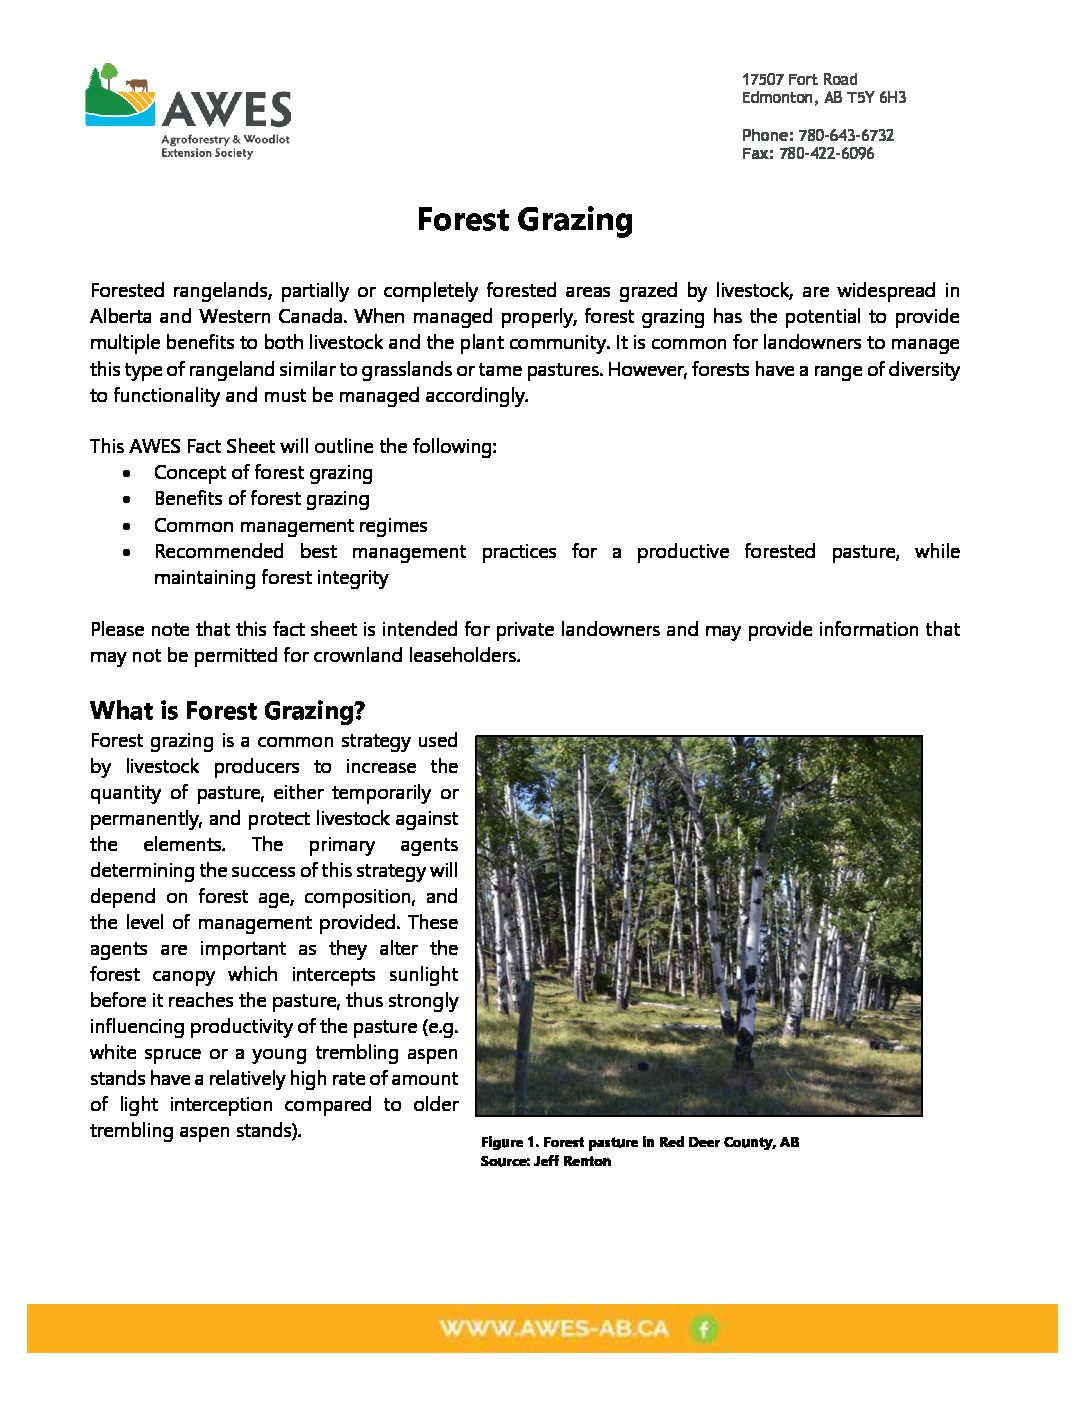 Forest Grazing